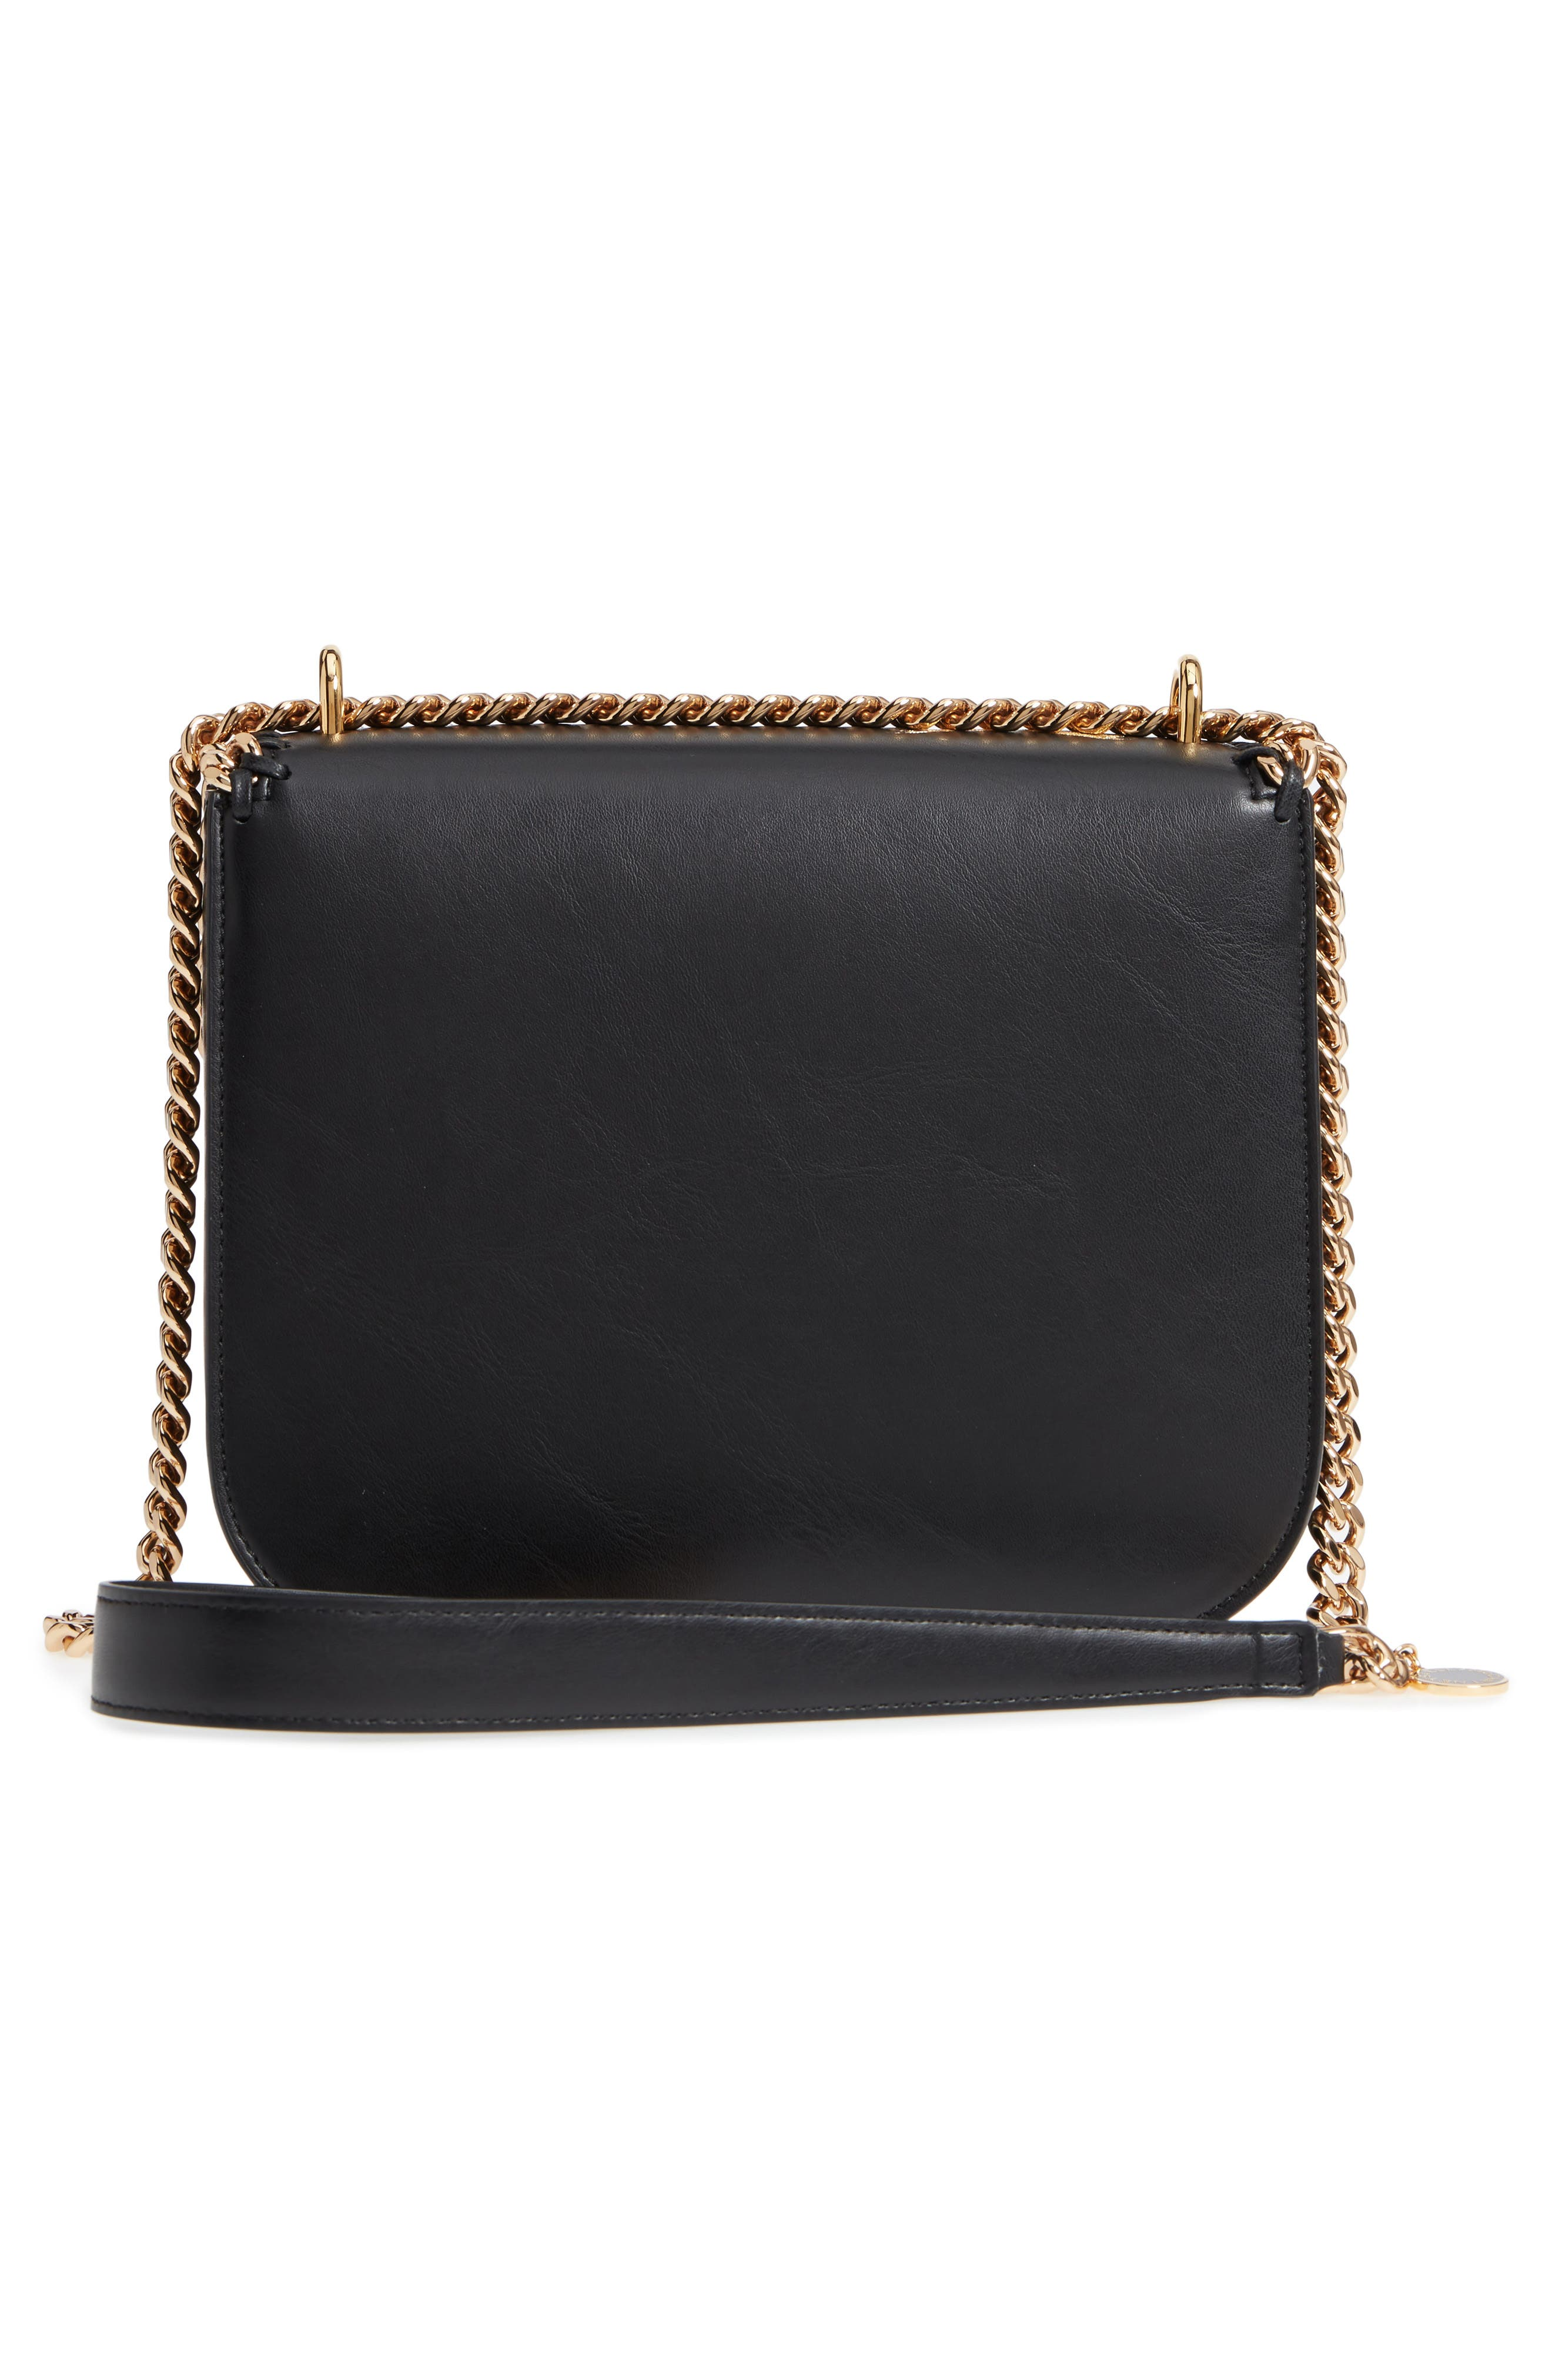 Falabella Hawaiian Embroidered Faux Leather Shoulder Bag,                             Alternate thumbnail 3, color,                             Black/ Gold